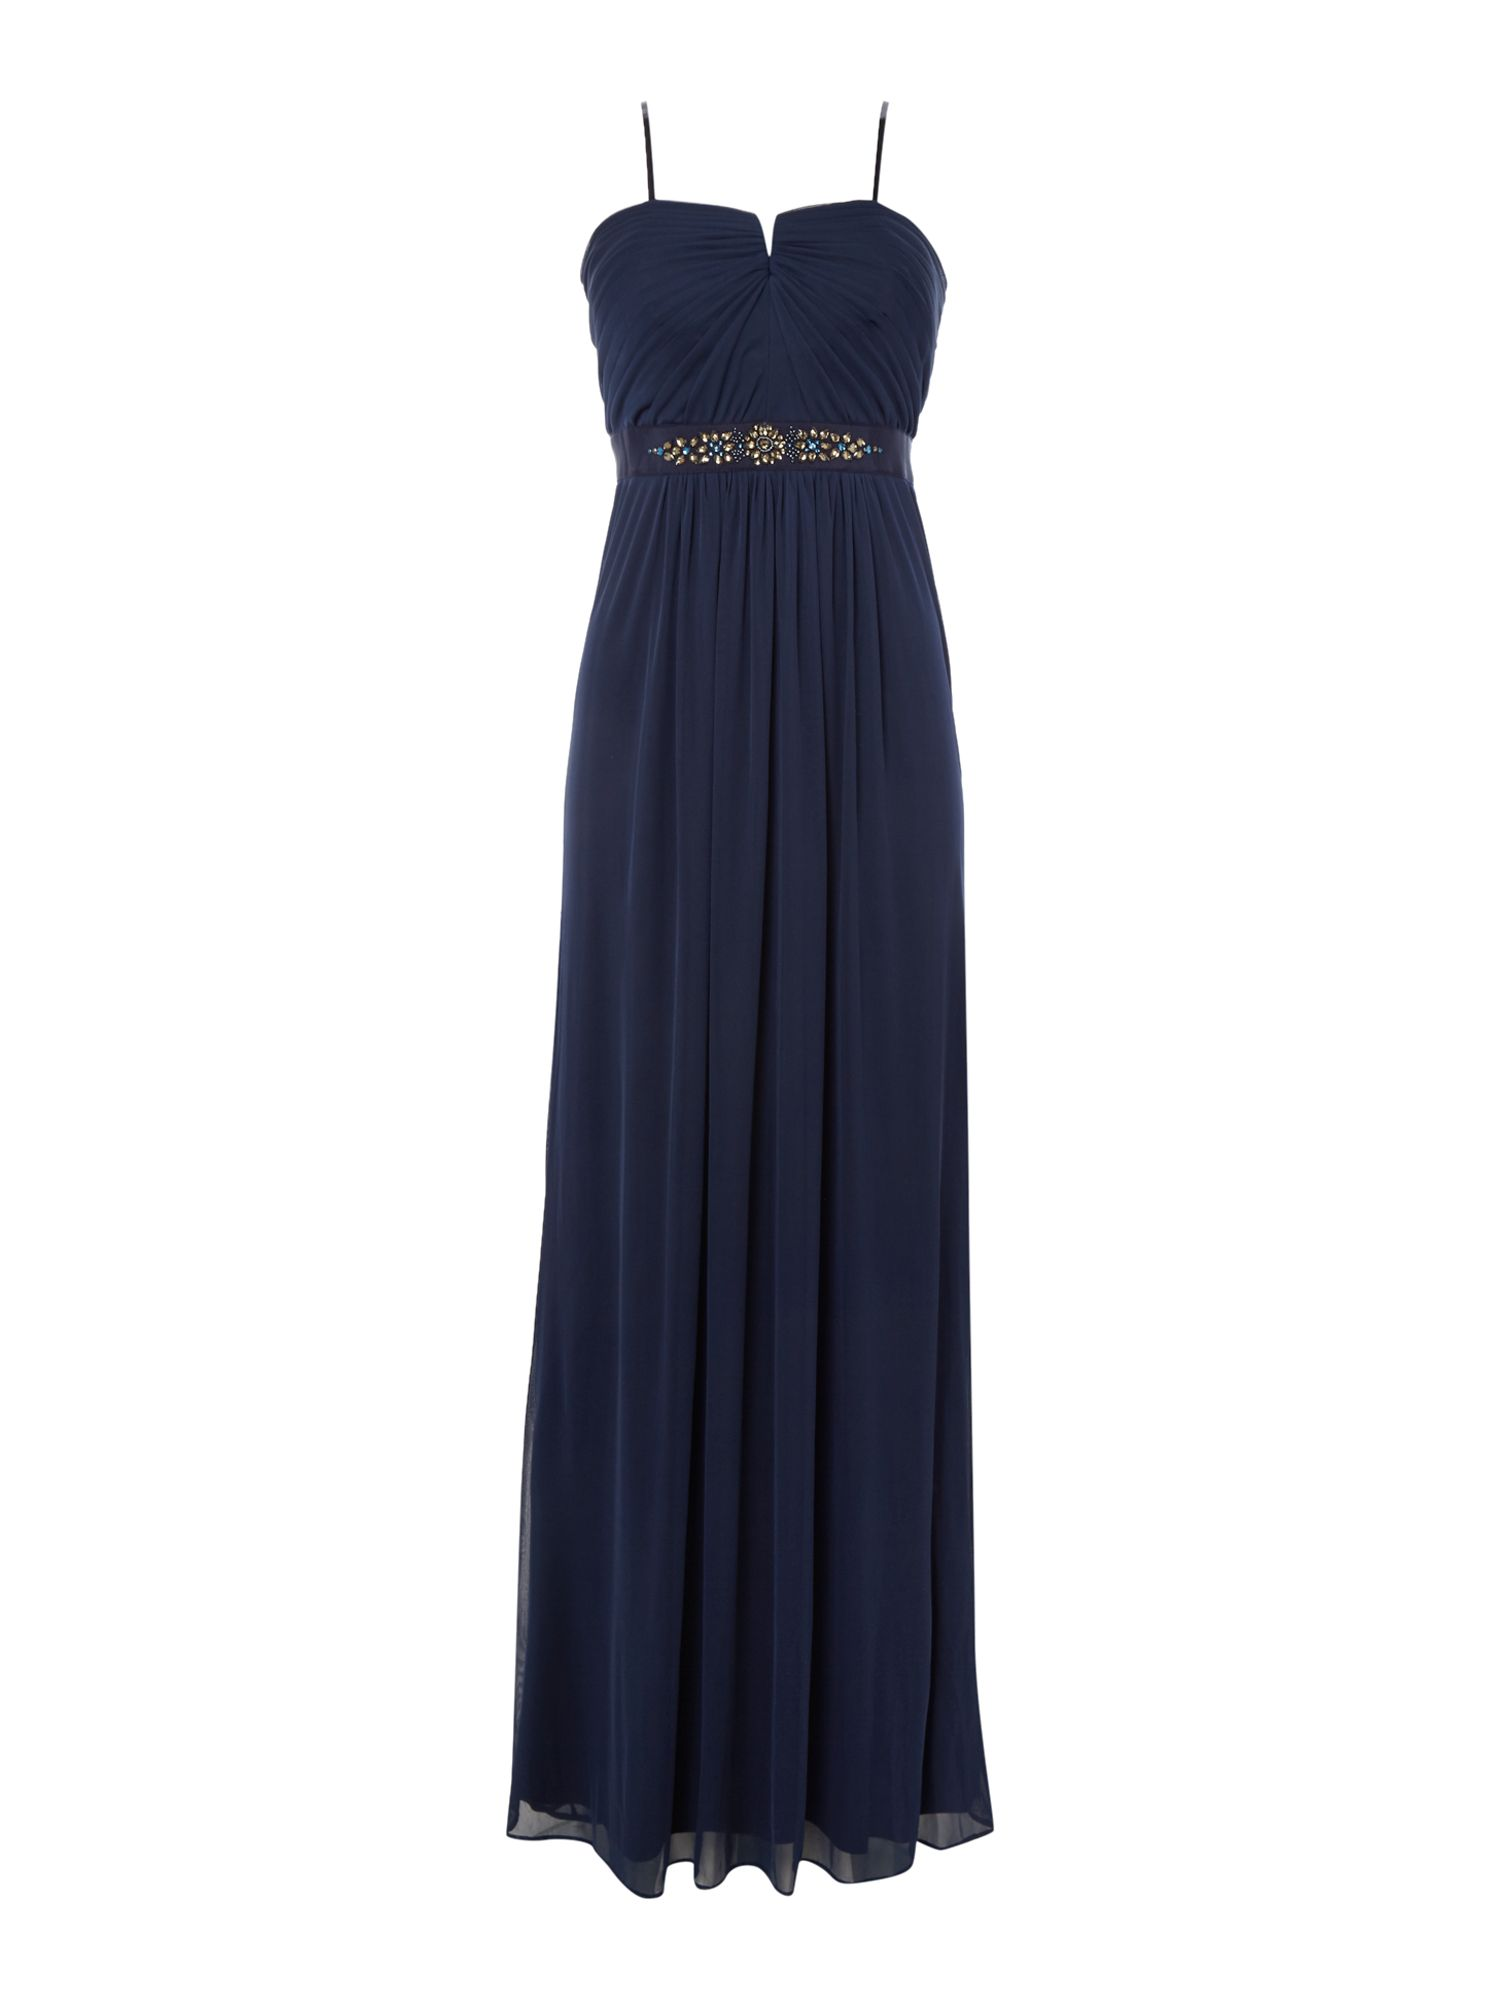 Adrianna Papell Strapless Beaded Waist Tulle Gown, Midnight Blue